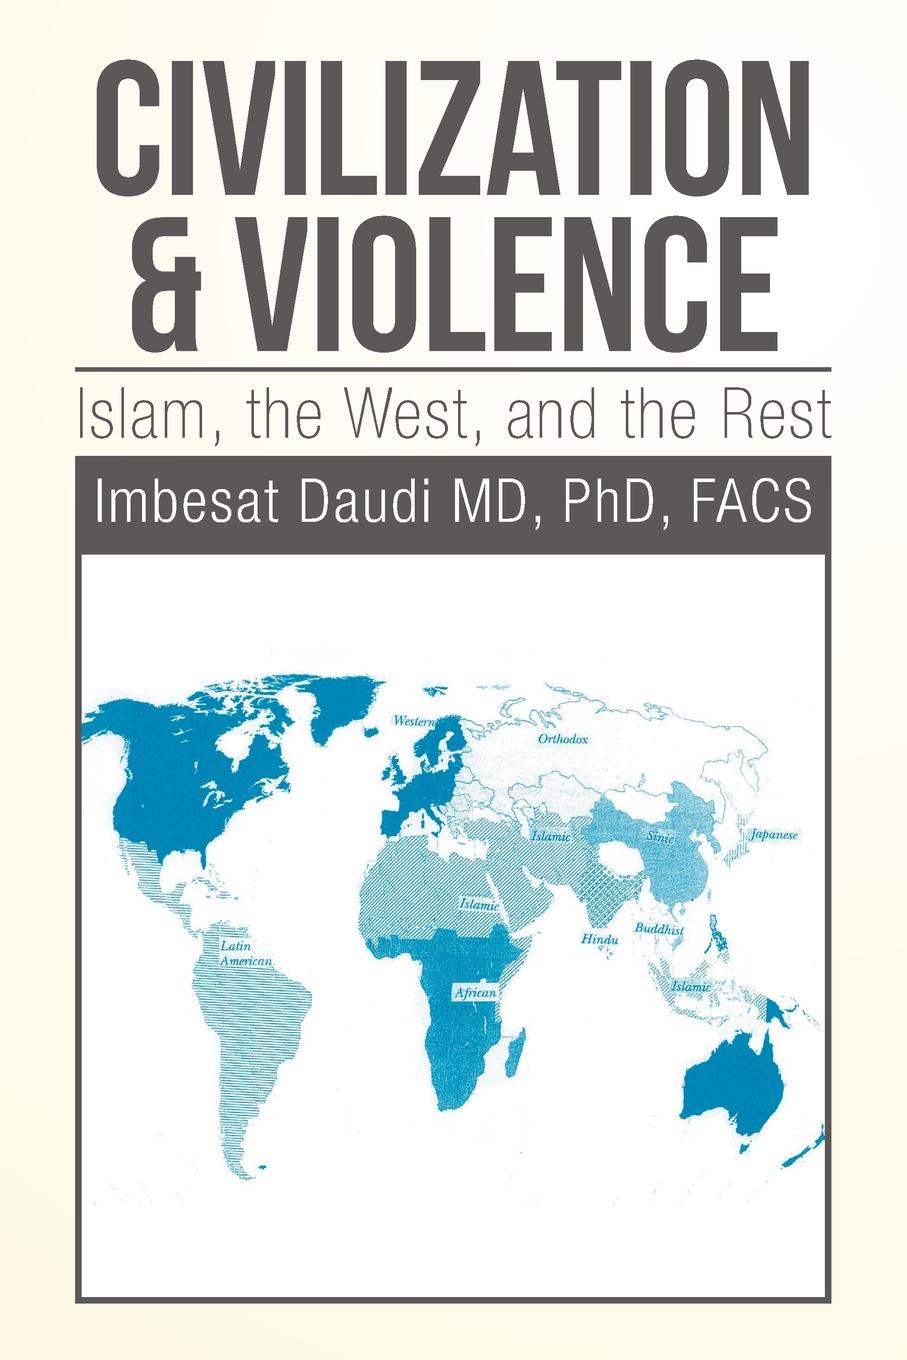 Phd Facs Imbesat Daudi MD Civilization & Violence. Islam, the West, and the Rest dr moniruzzaman sarker and md mojahedul islam reproductive ecology of freshwater crab